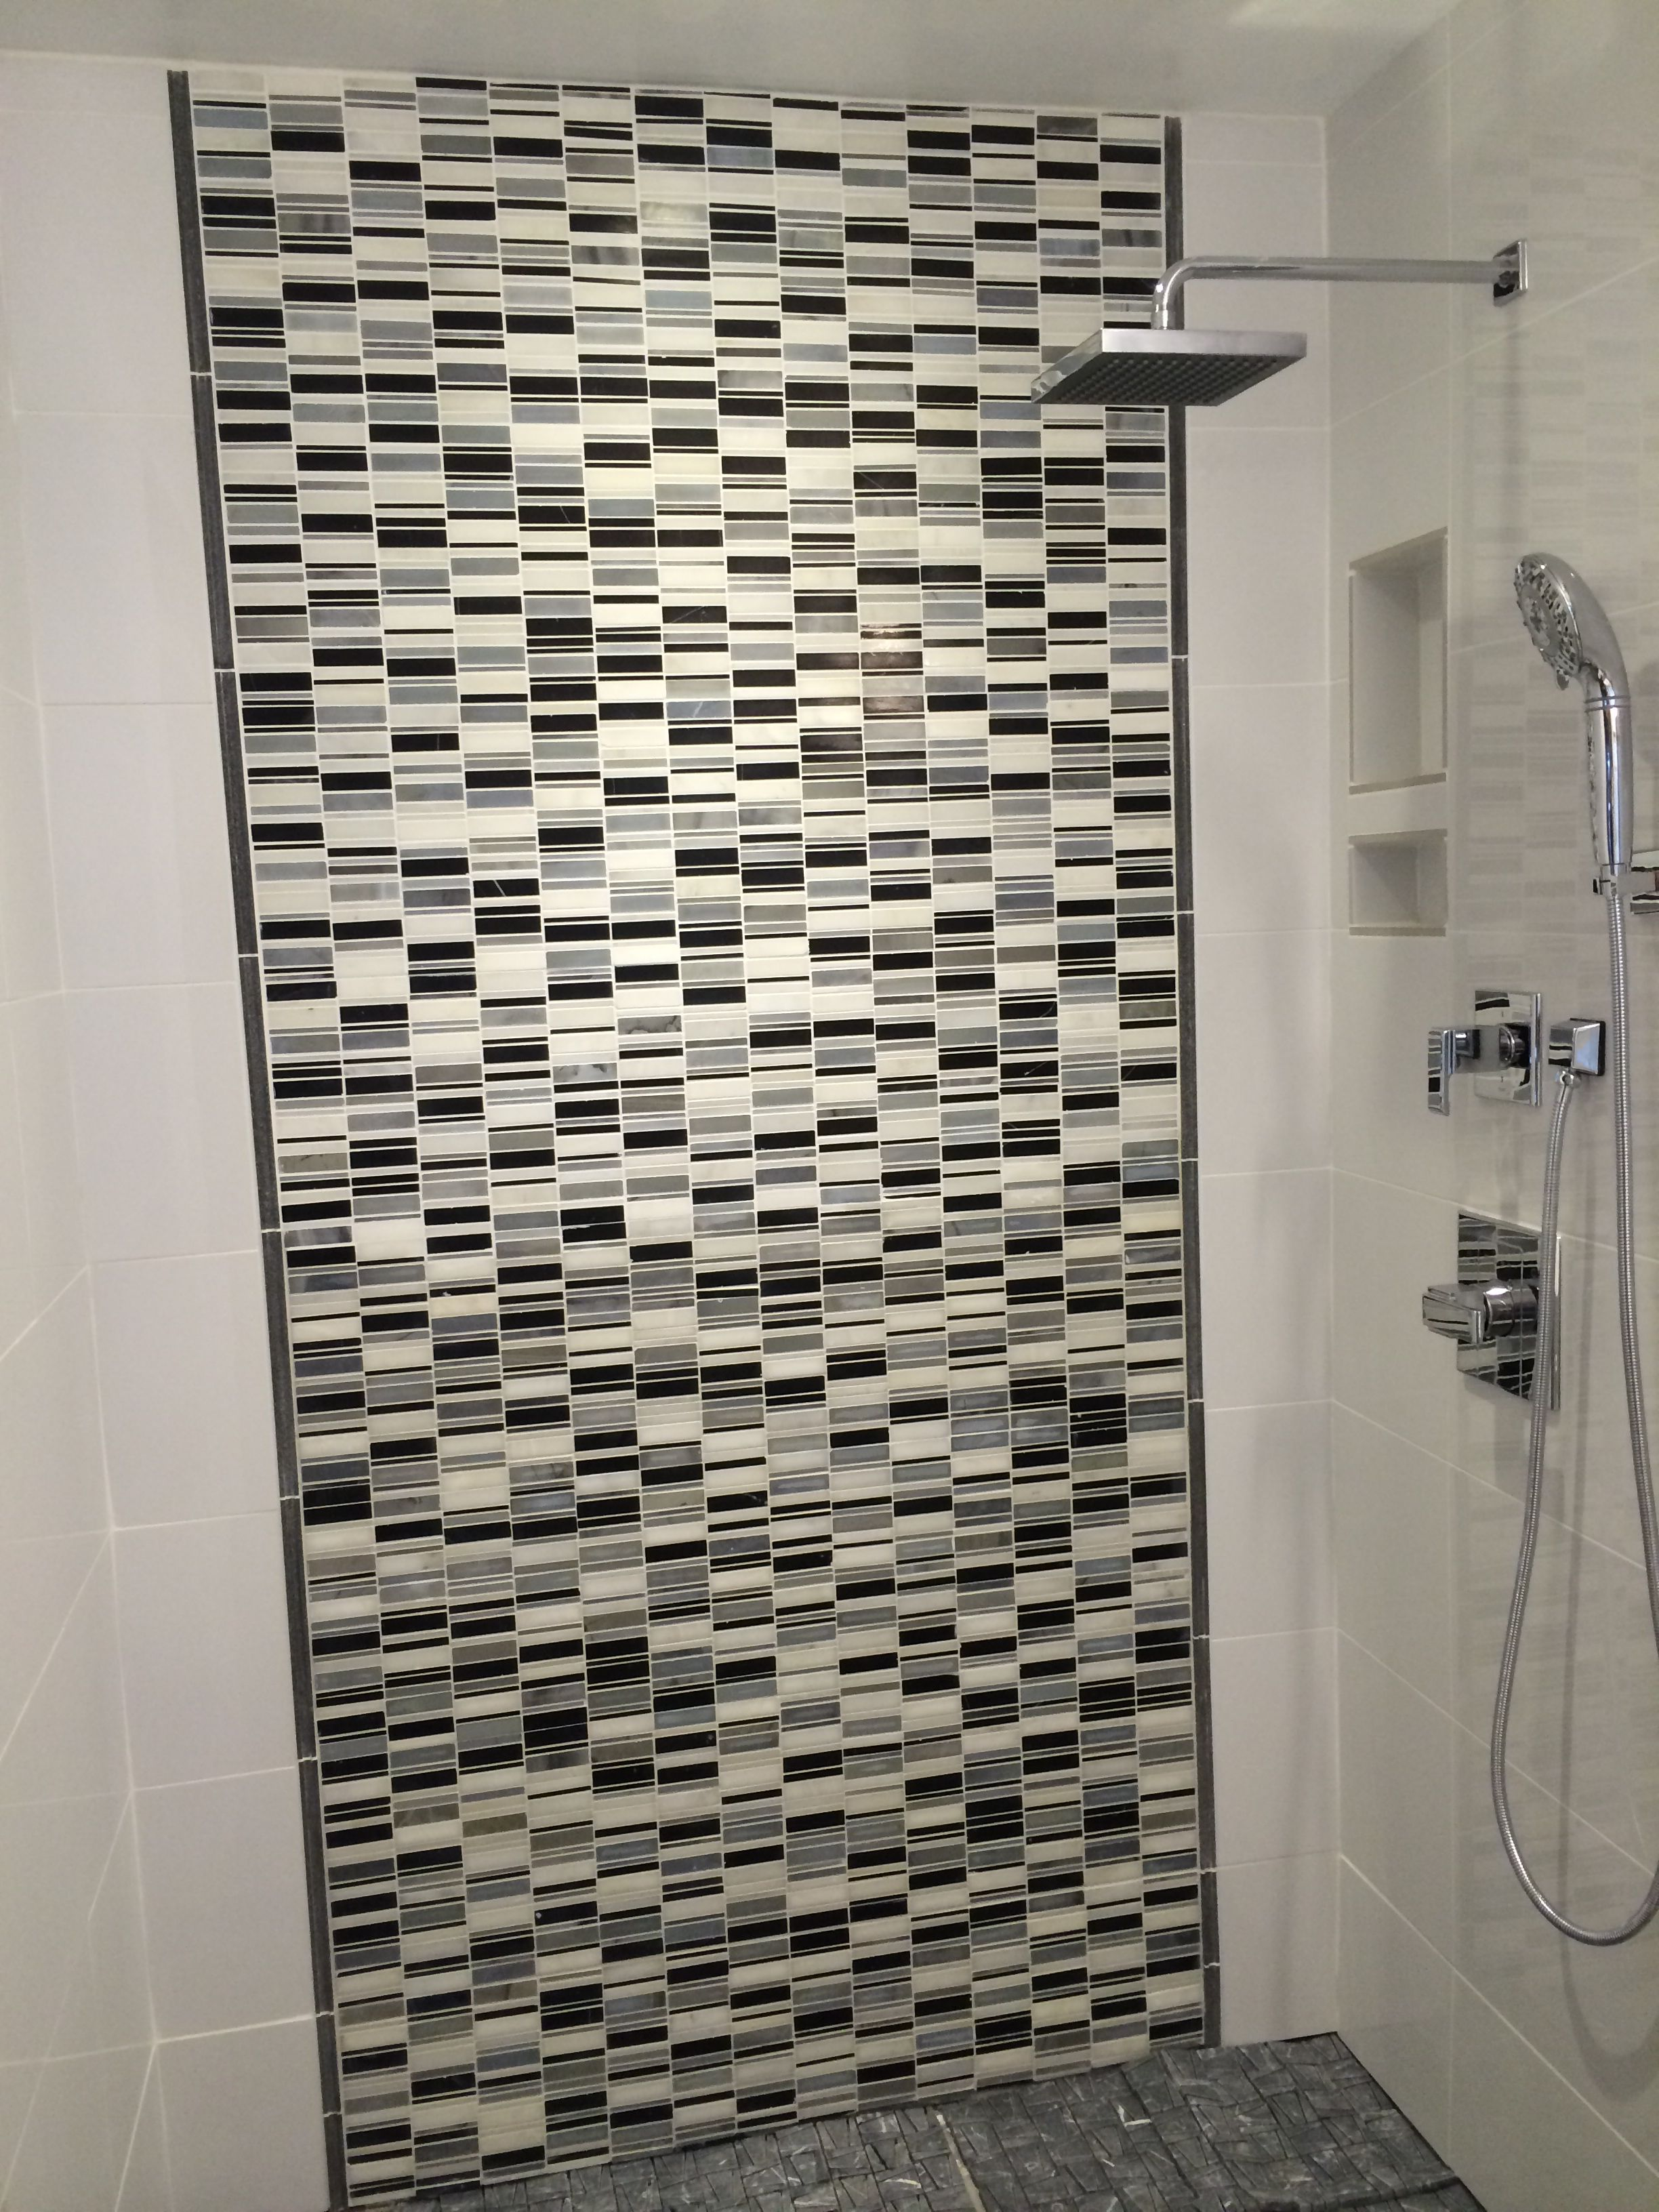 Our Master Shower White Glossy Porcelain 12 X 24 Tile On The End Walls Grey Black And White Mo White Porcelain Tile Black And White Marble White Tiles